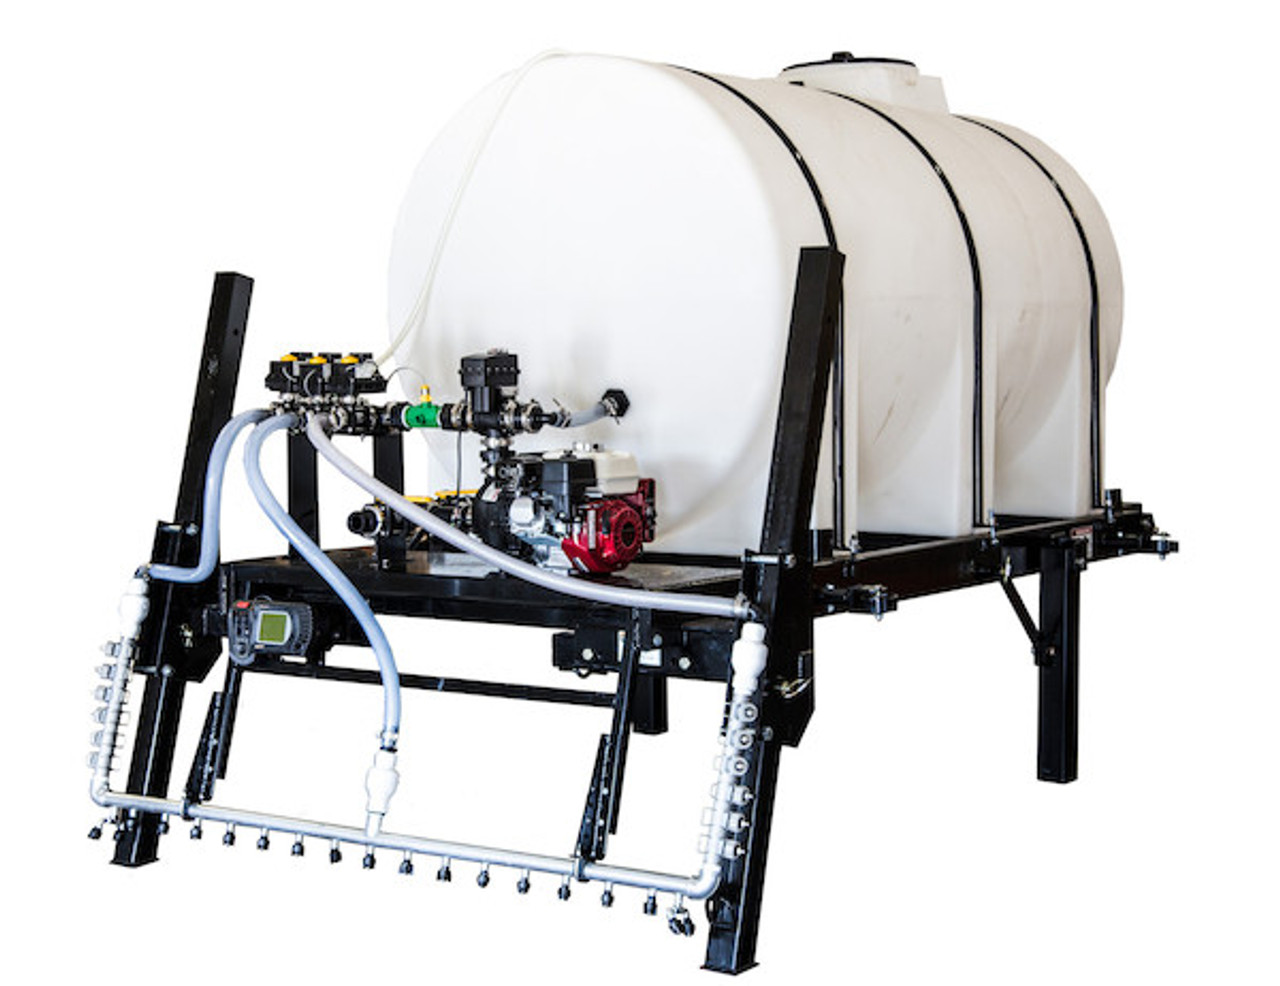 6191631 BUYERS SALTDOGG 1750 Gallon Gas-Powered Anti-Ice System With One-Lane Spray Bar With Automatic Application Rate Controlol